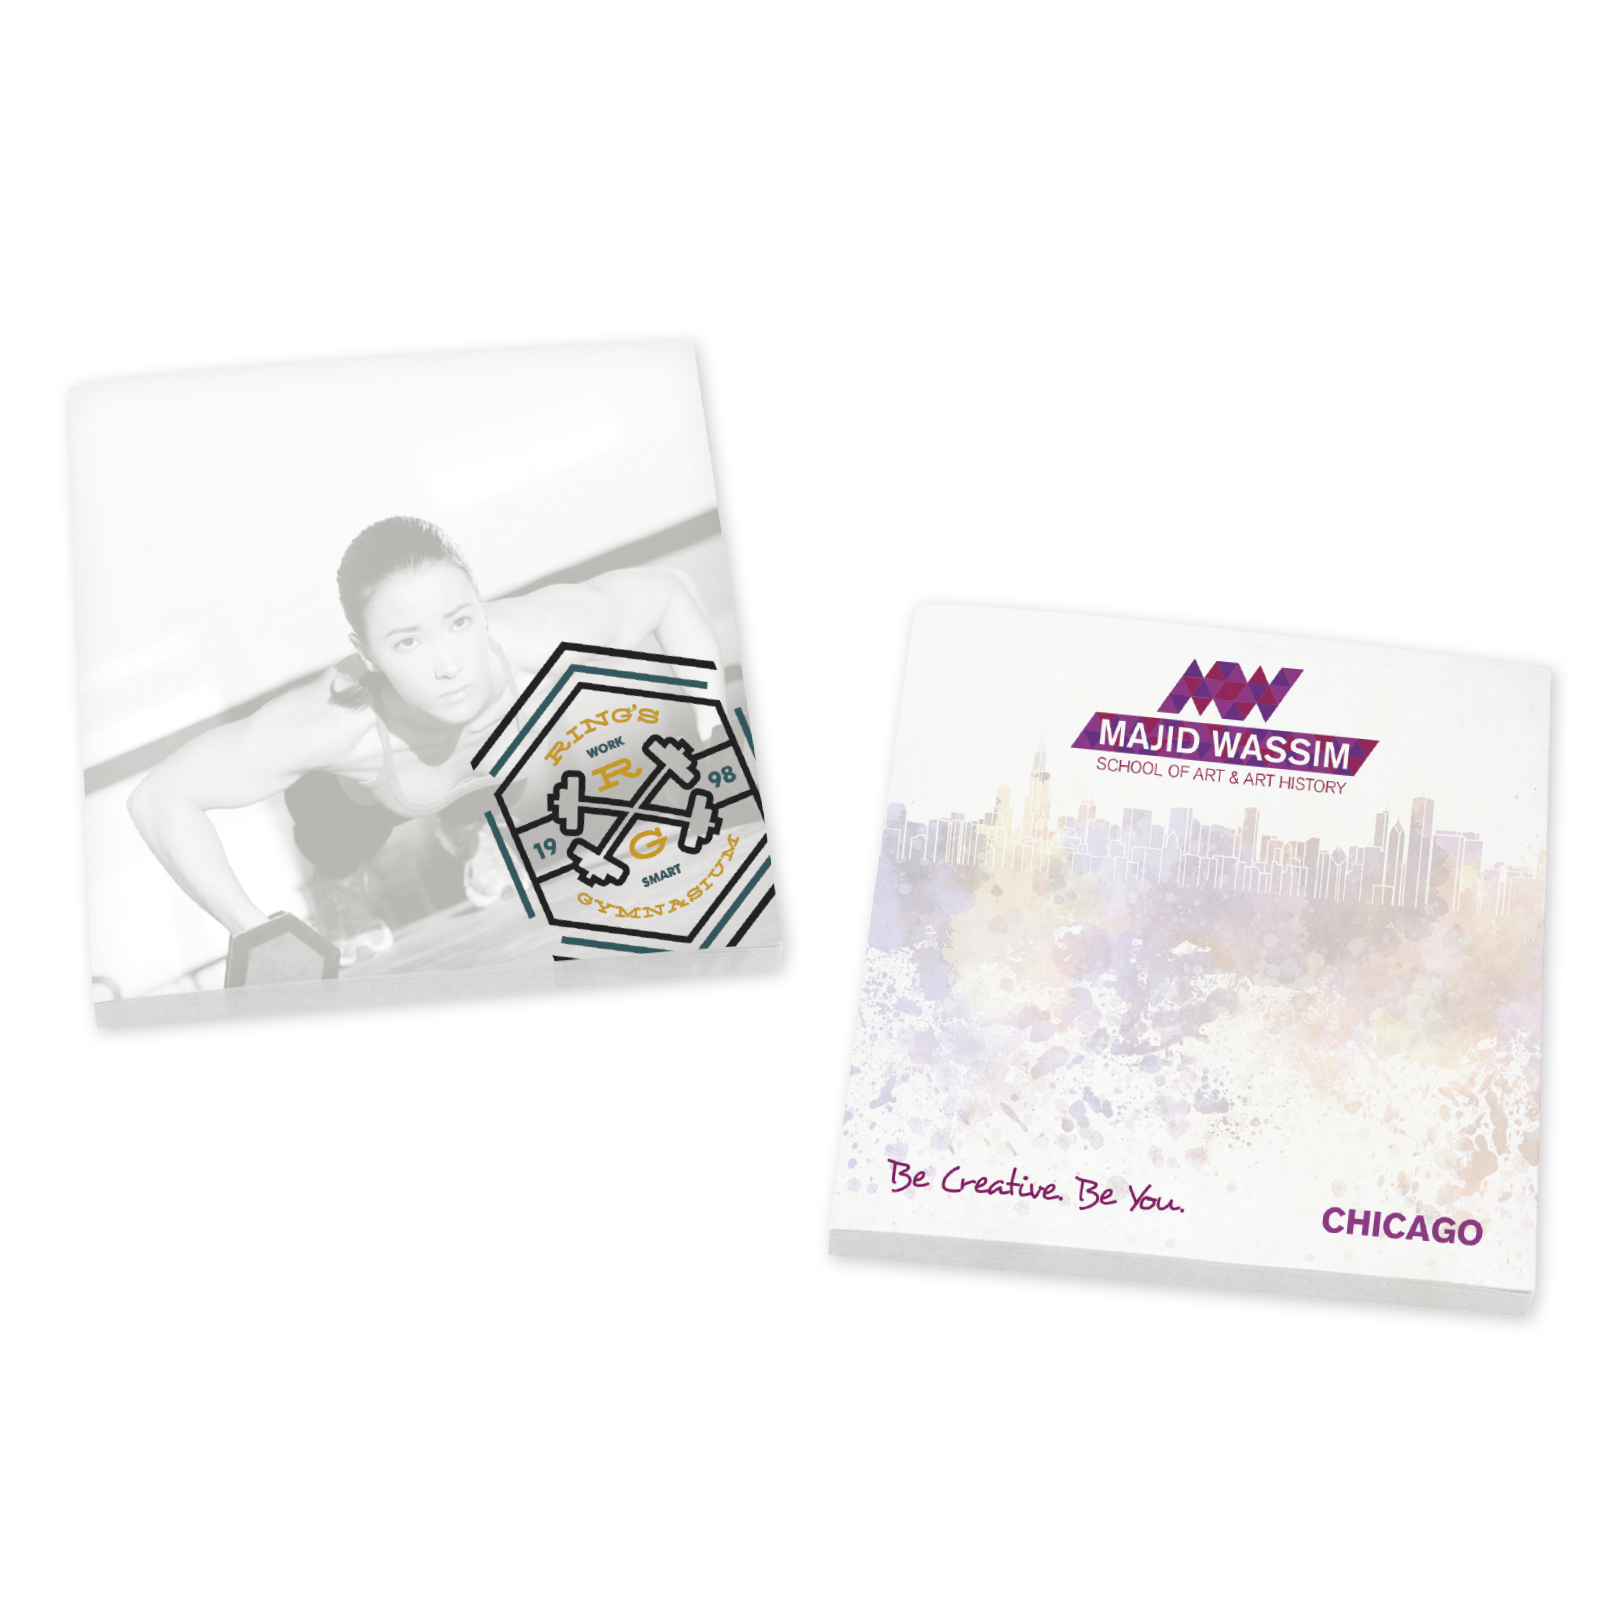 BIC Adhesive 50 Sheet Notepad (3